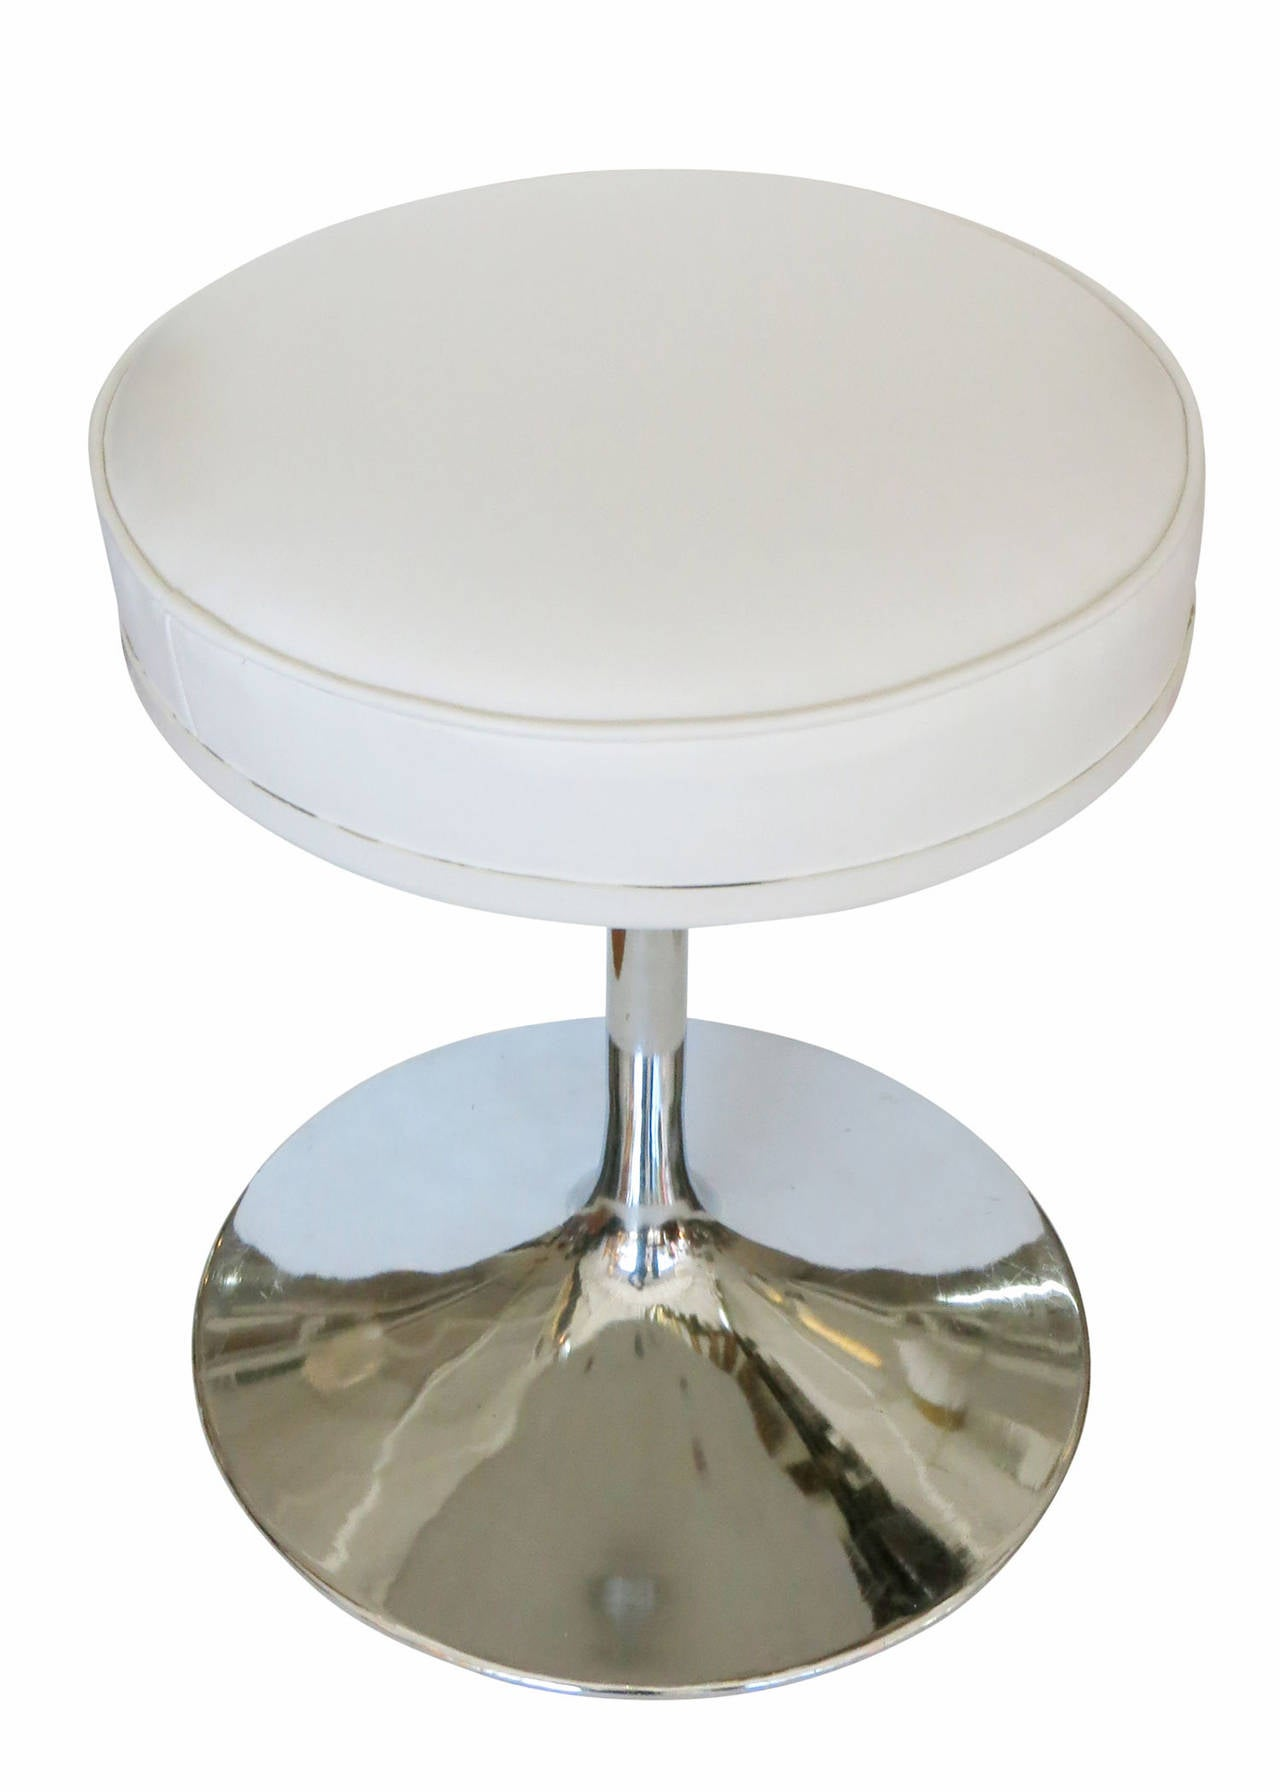 Eero Saarinen Quot Tulip Quot Stool For Knoll With Chrome Base At